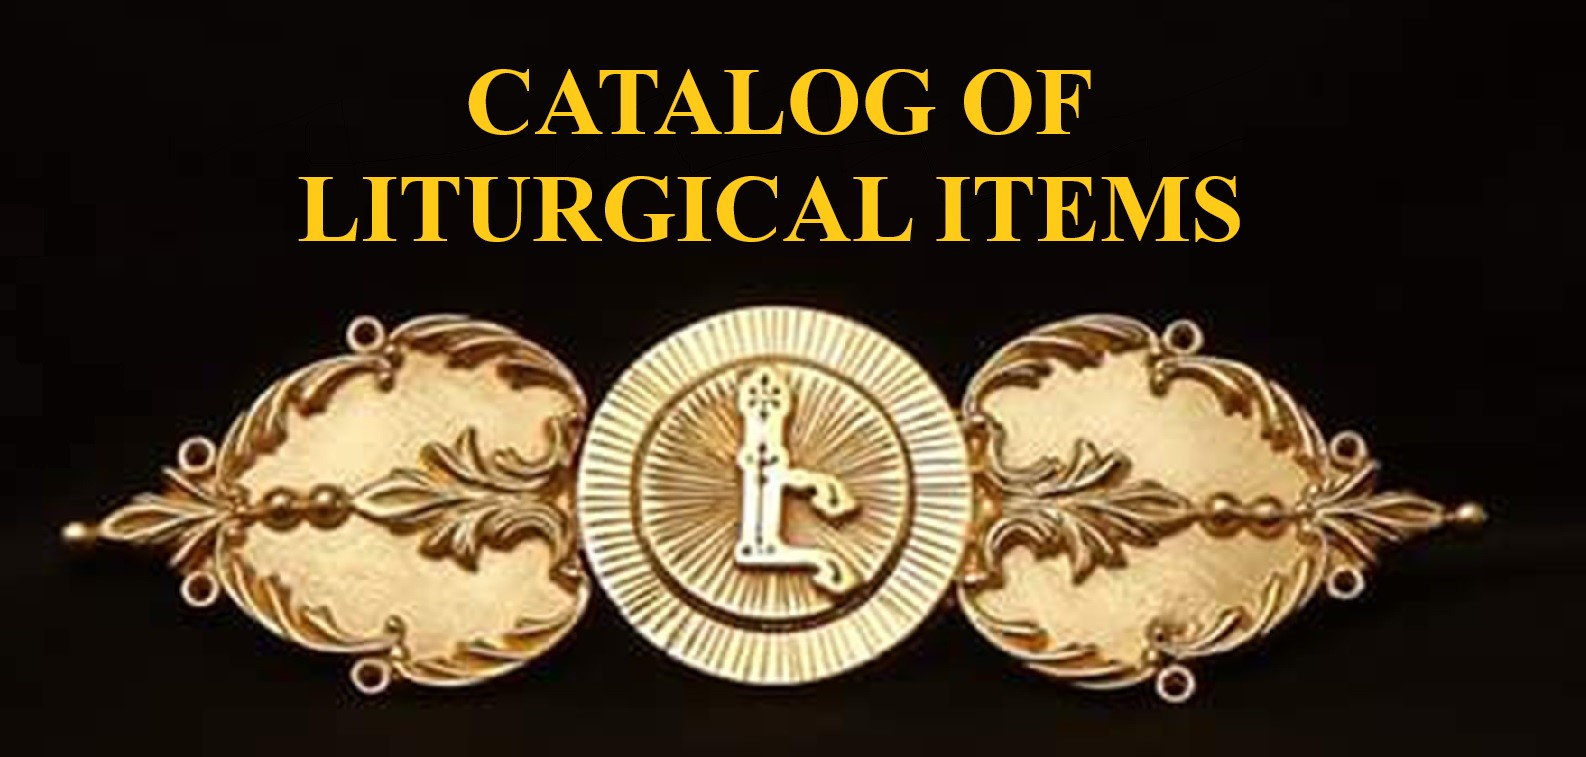 Catalog of liturgical items